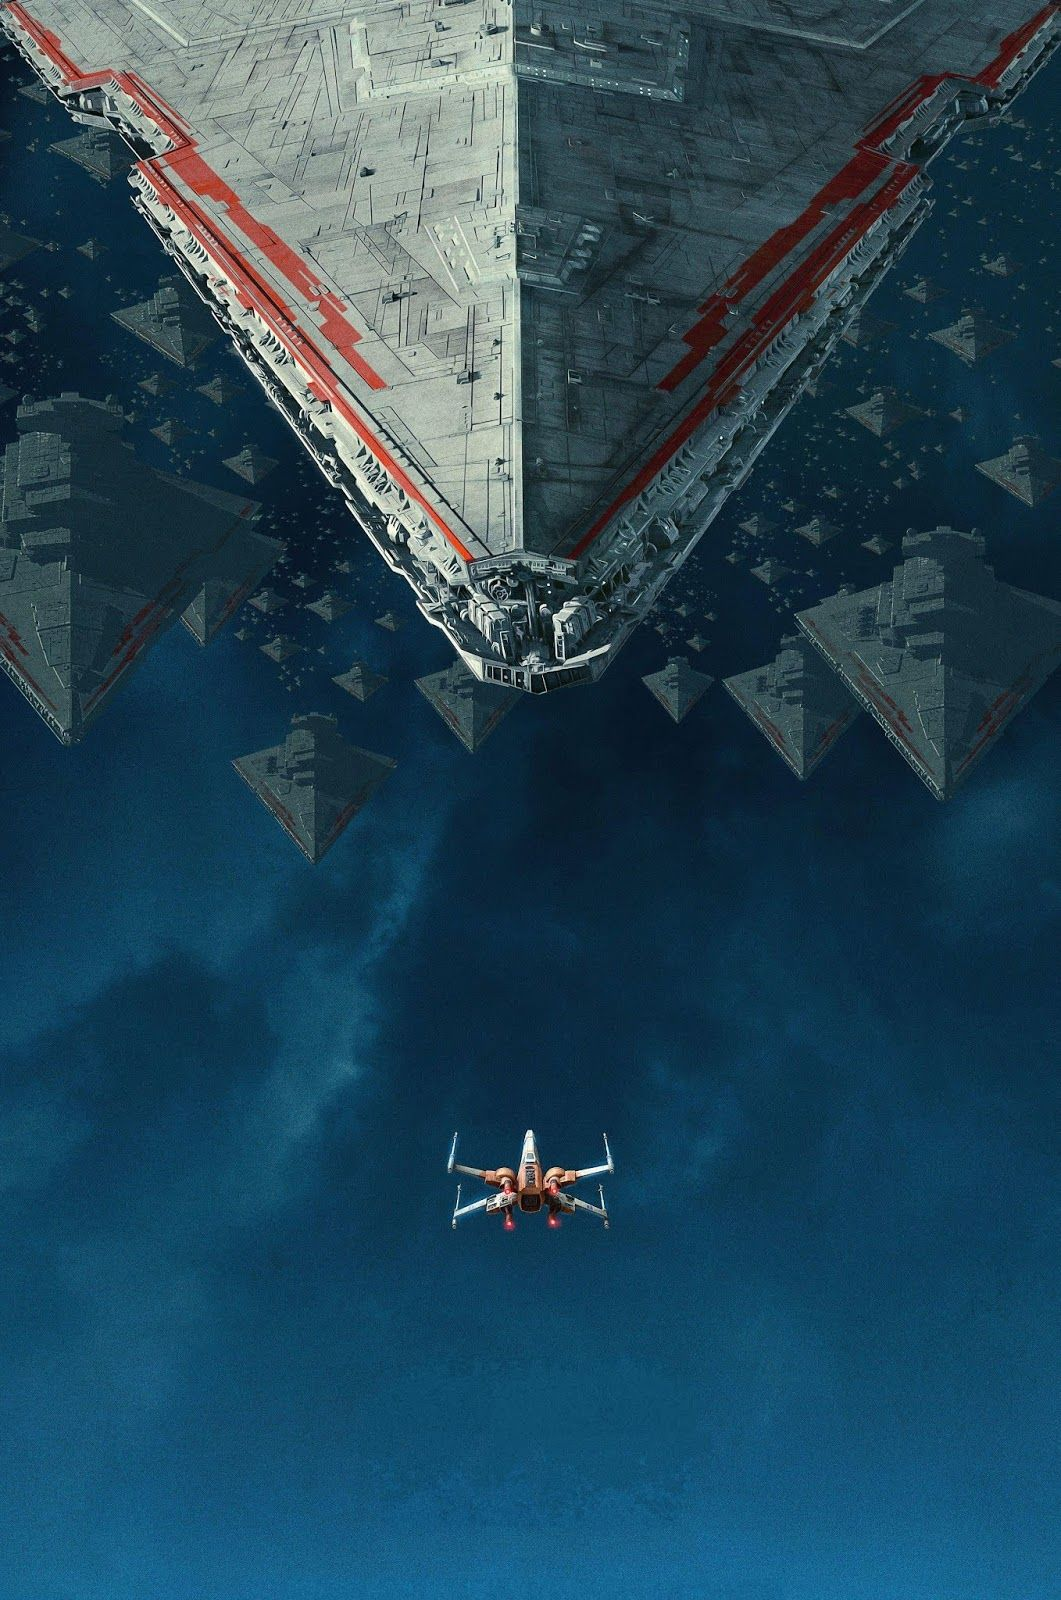 Star Wars The Rise Of Skywalker Hd Wallpapers 7wallpapers Net In 2020 Star Wars Wallpaper Star Wars Background Star Wars Images